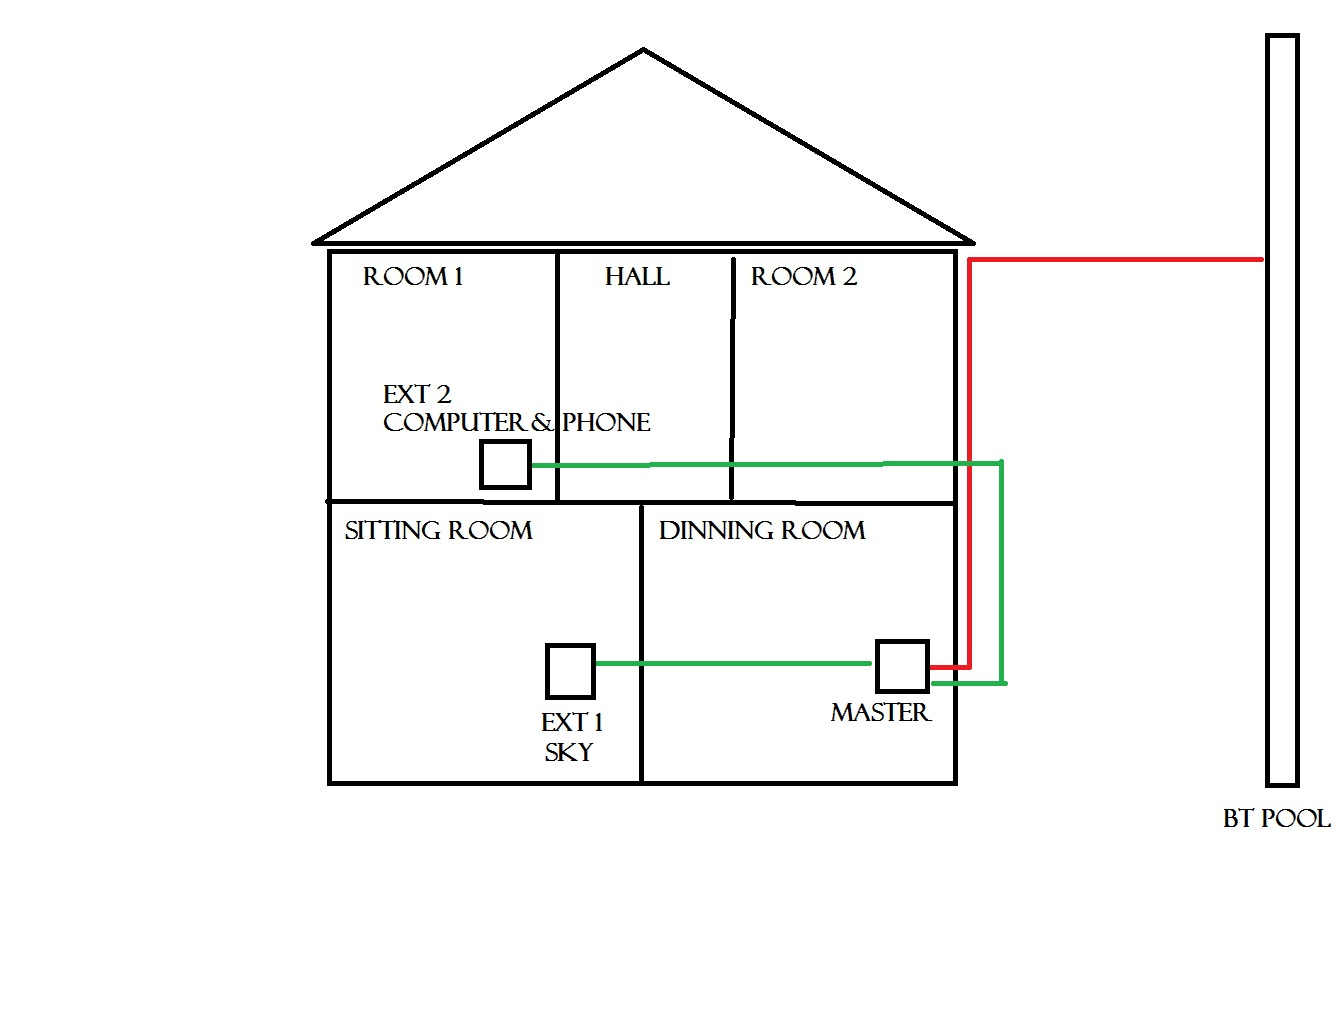 bt infinity 2 wiring diagram  | 1108 x 631